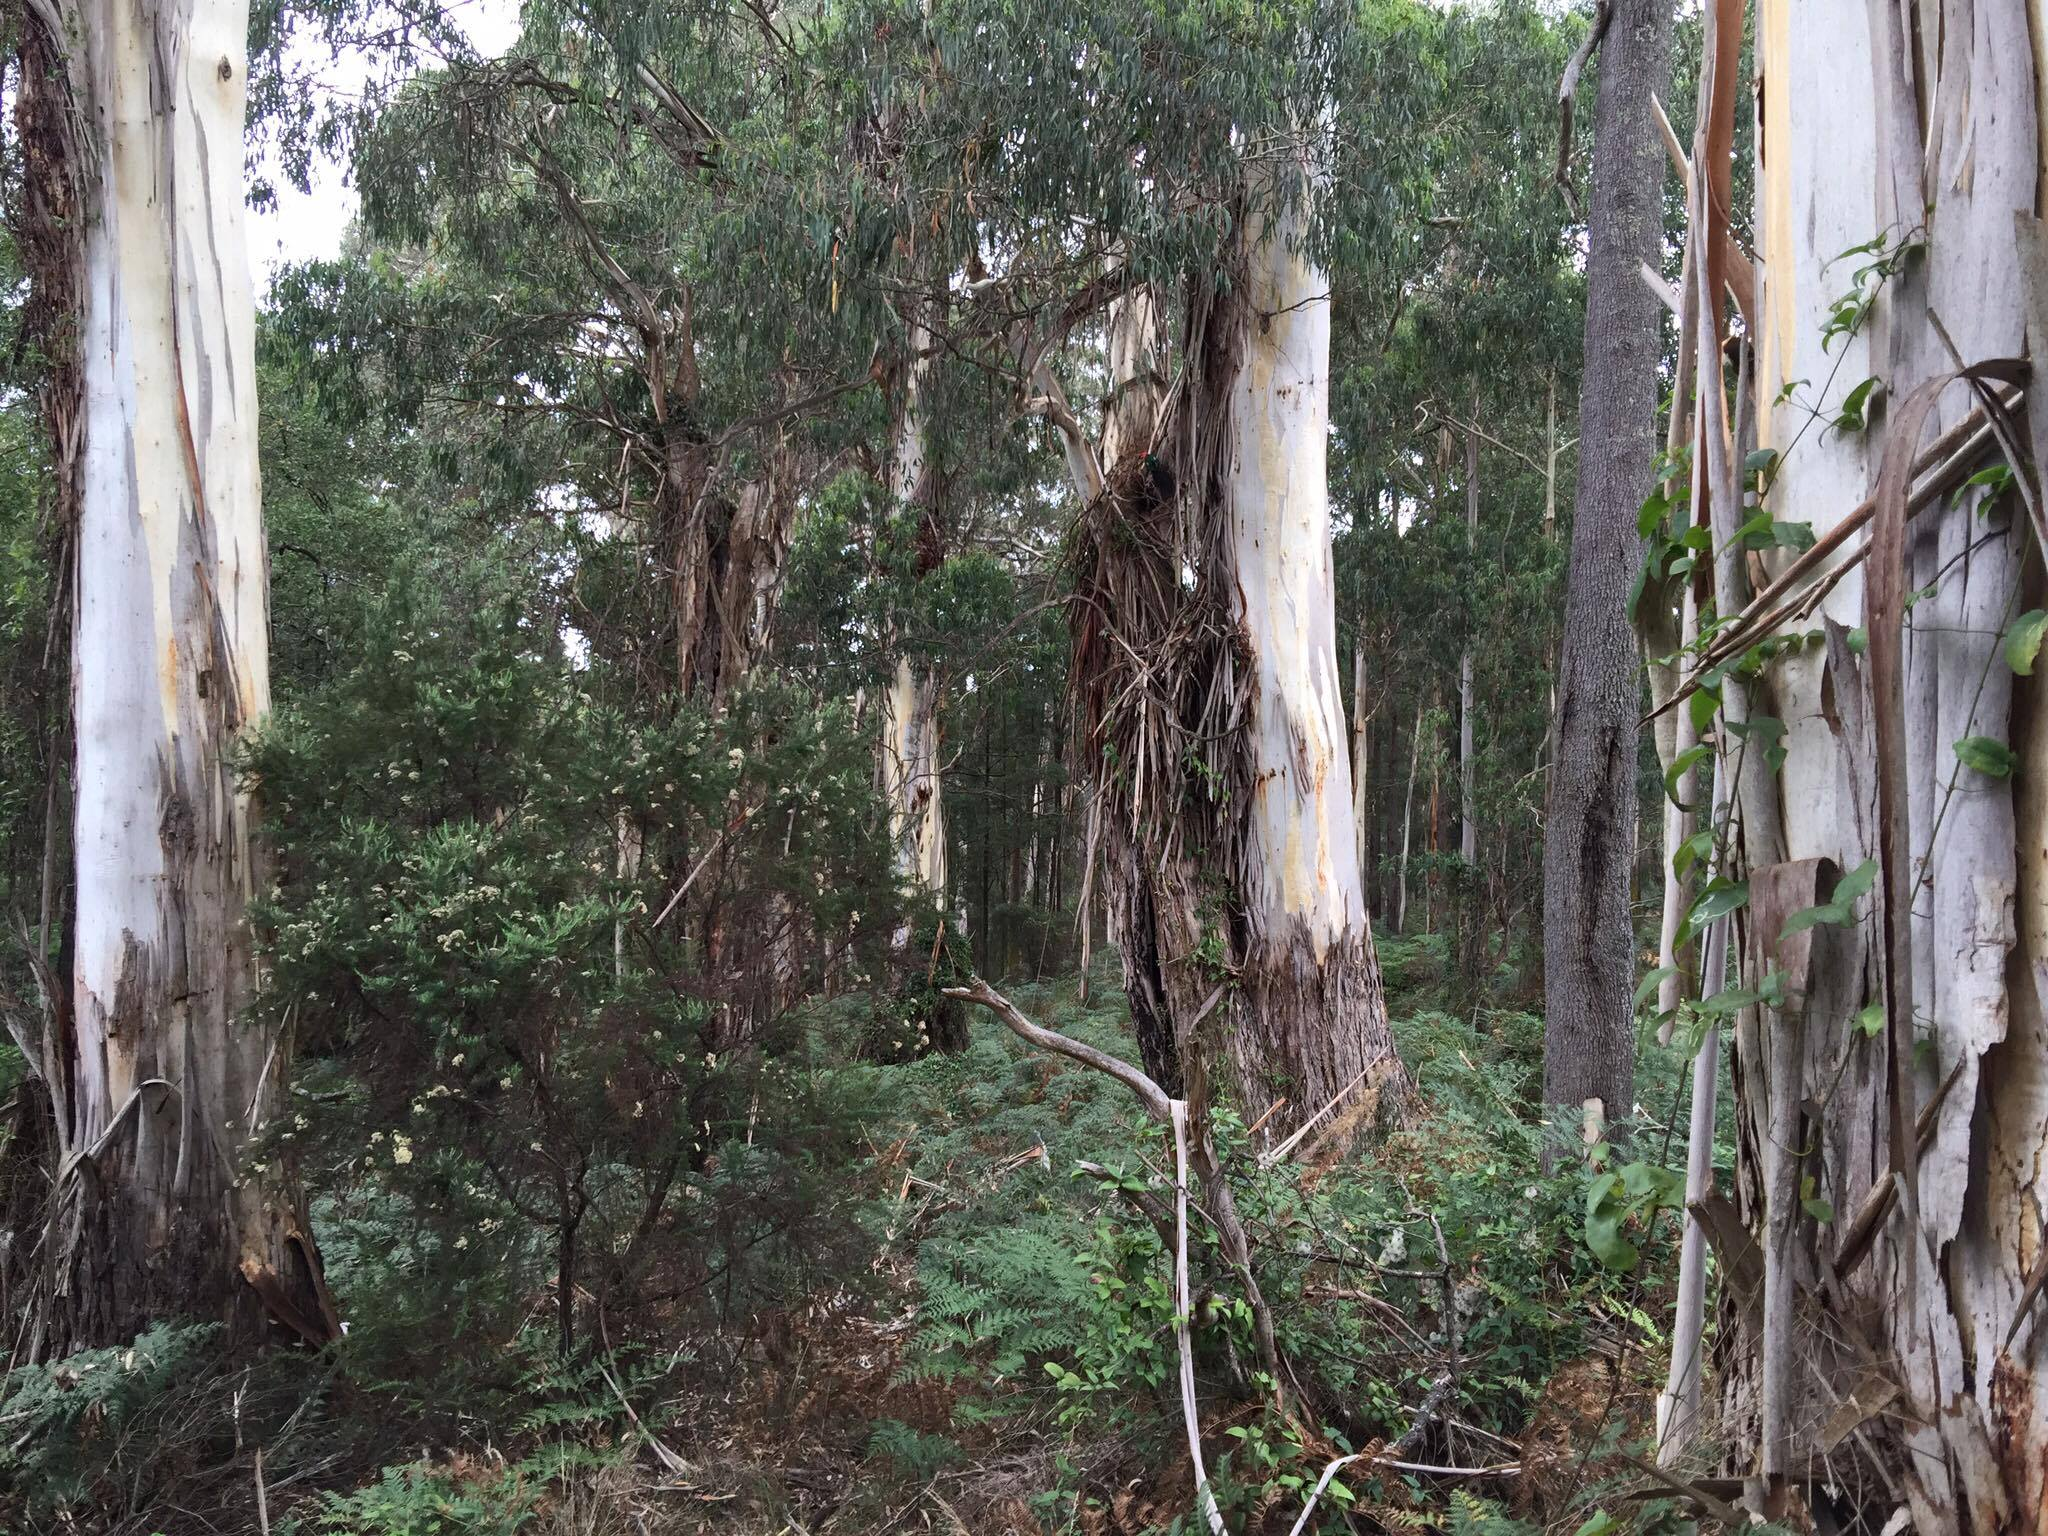 The Gully boasts some impressive native trees as well as more low-lying flora.